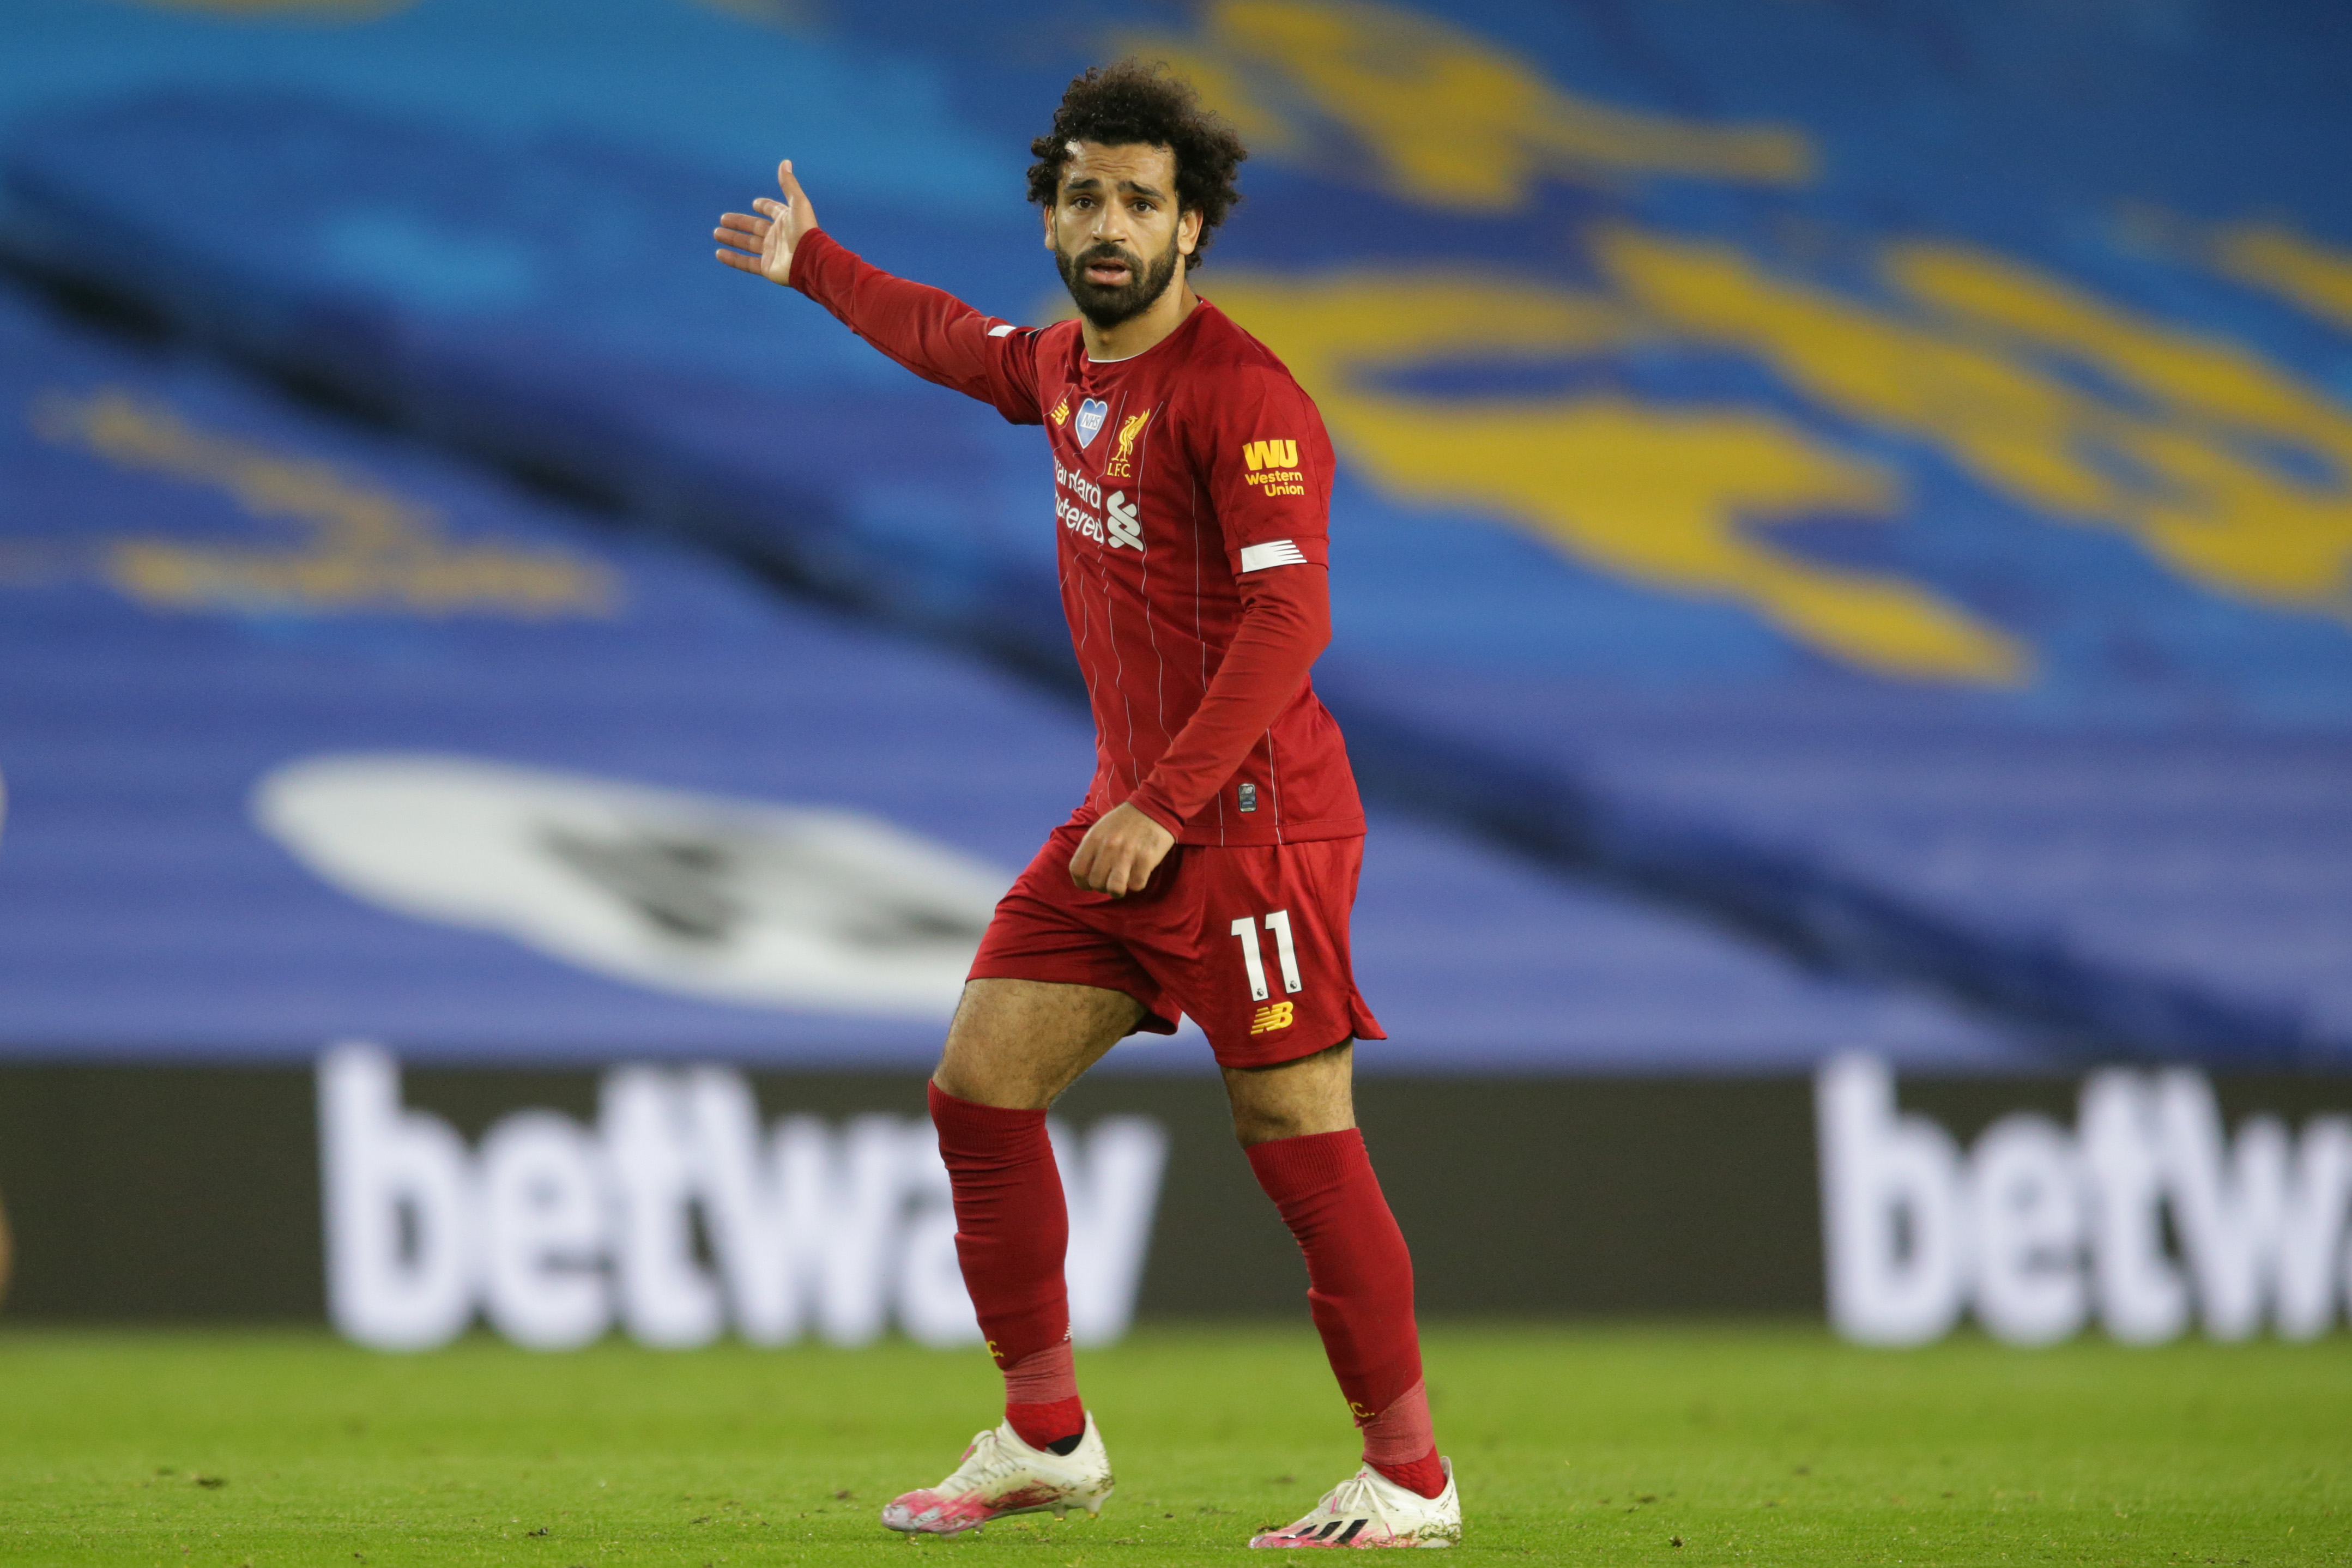 Mohamed Salah of Liverpool during the Premier League match between Brighton & Hove Albion and Liverpool FC at American Express Community Stadium on July 8.